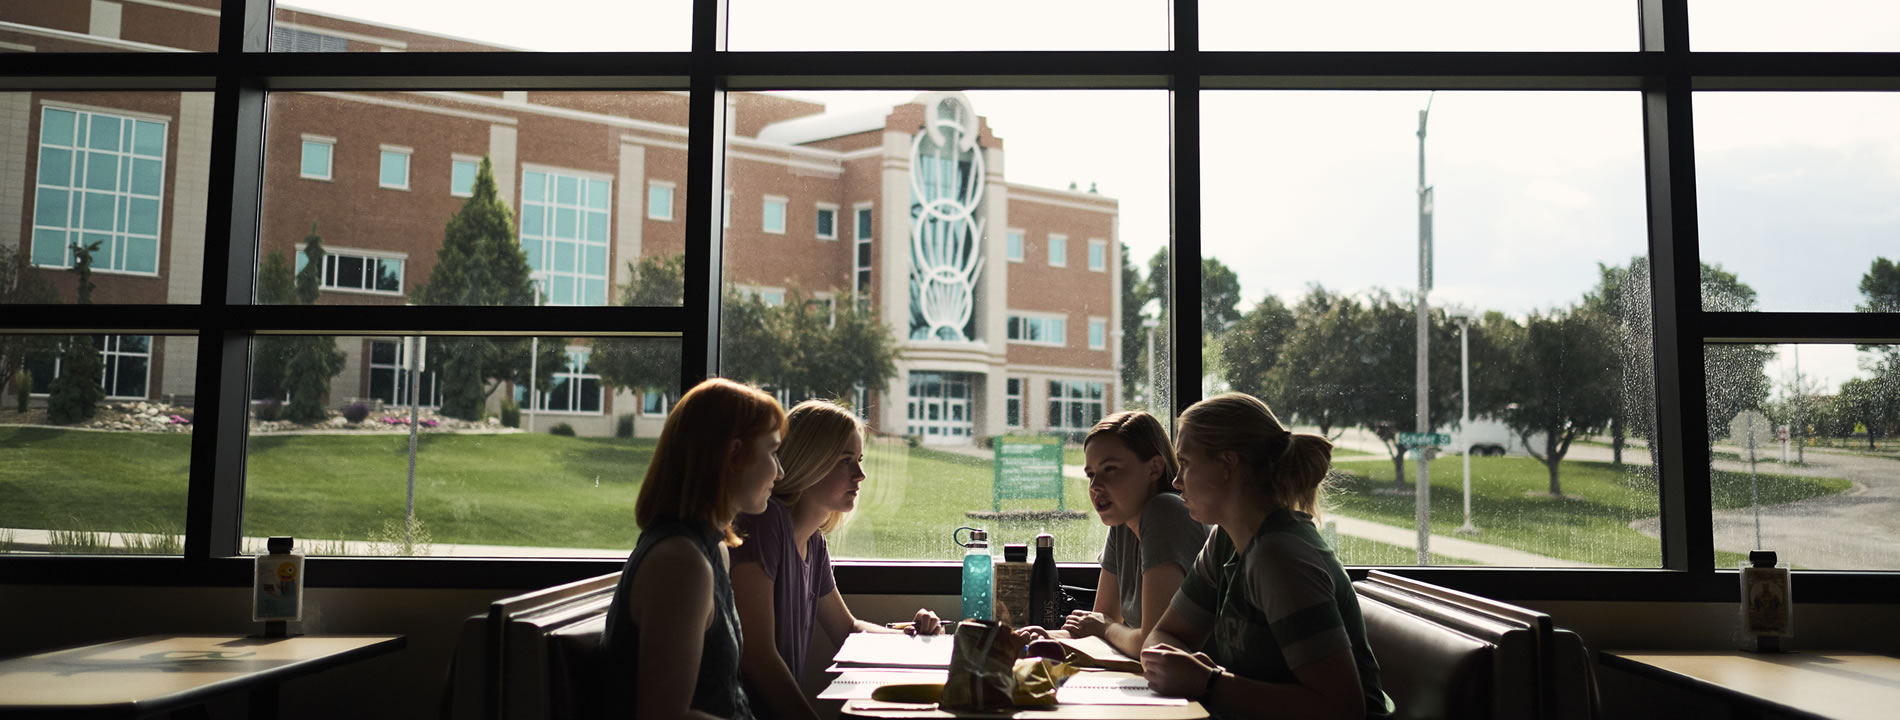 Bismarck State College Image of campus